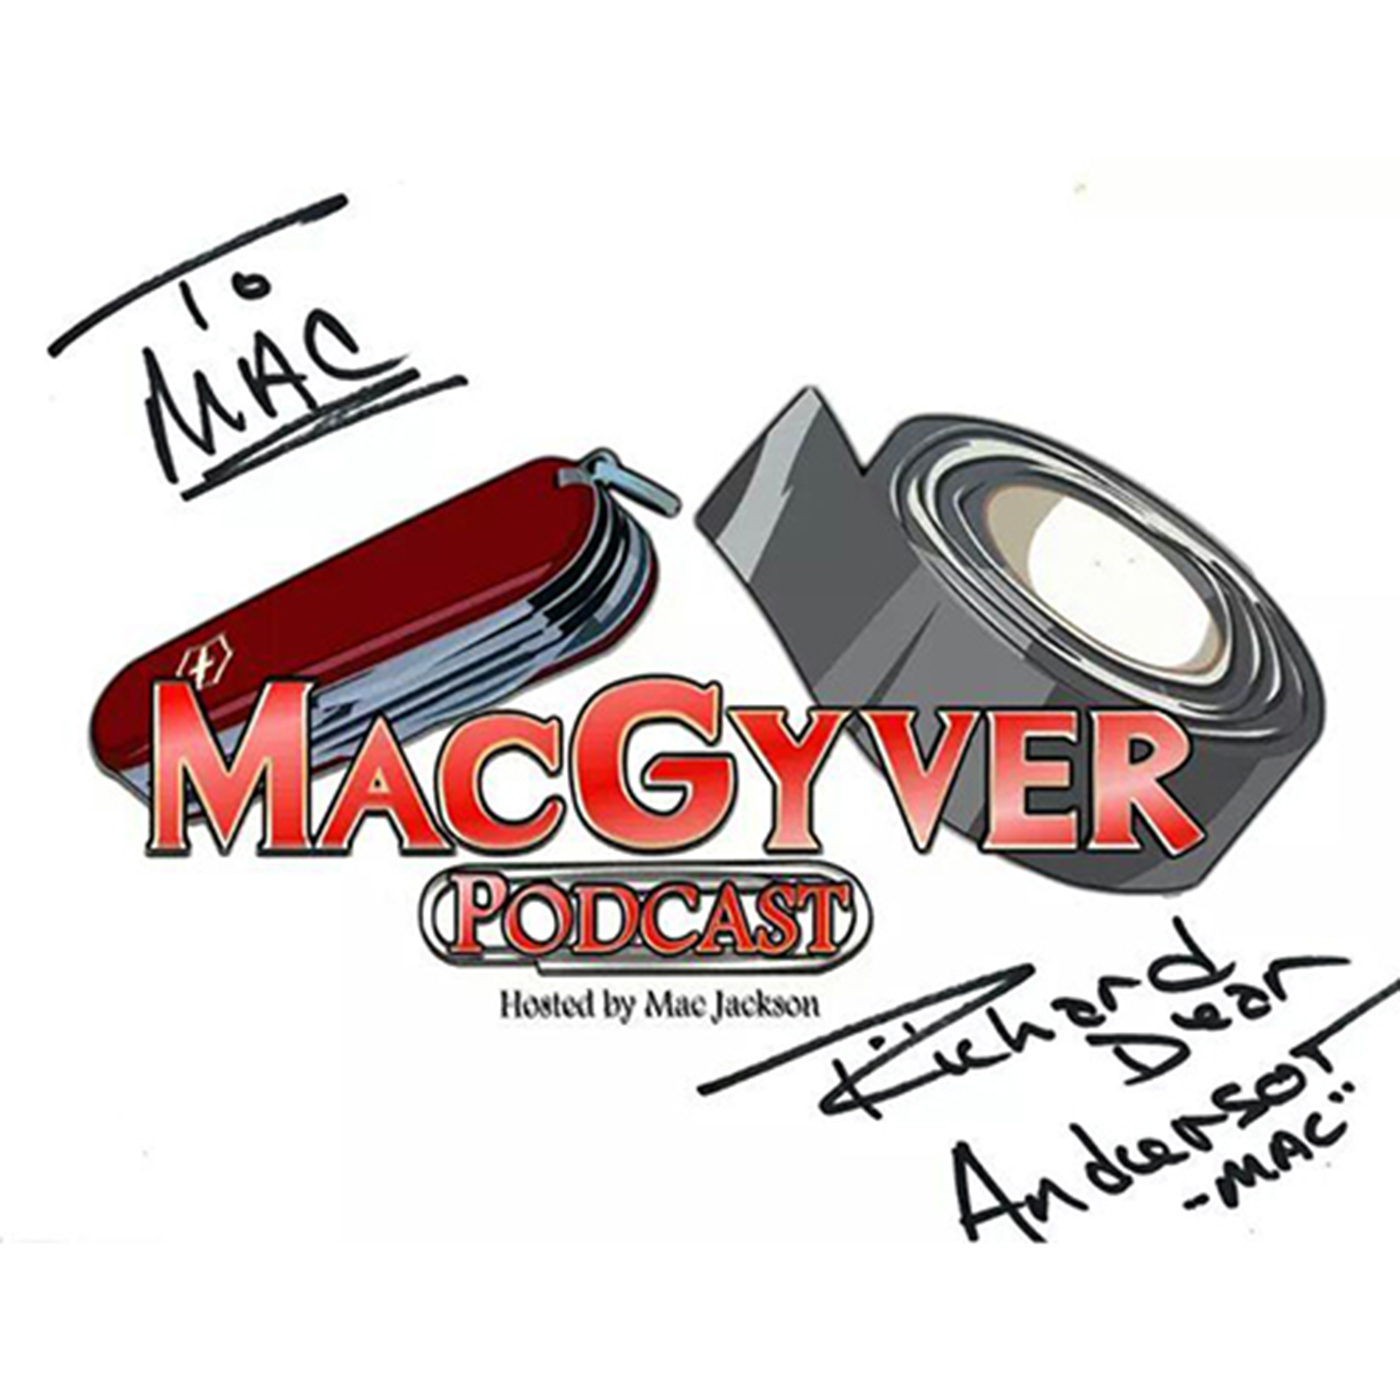 The MacGyver Podcast